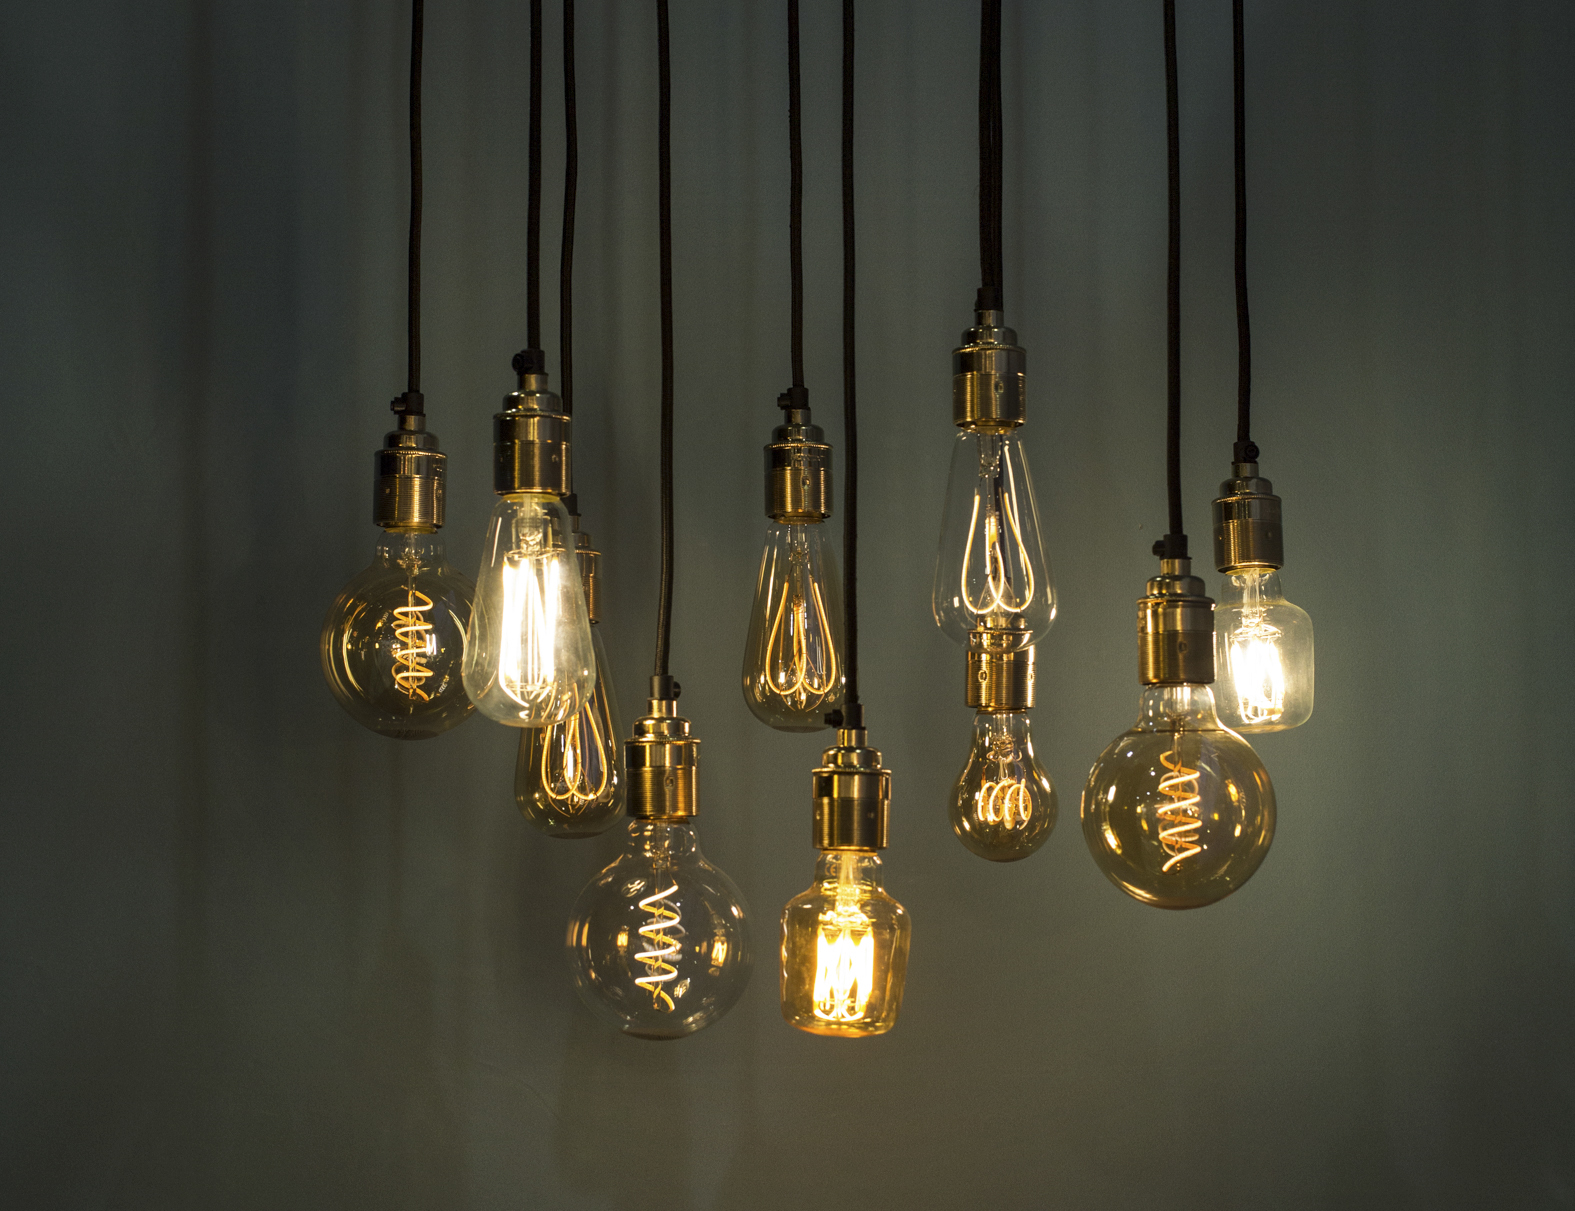 Light Bulbs - Make sure ALL lightbulbs are working in EVERY light source.Missing or burnt out bulbs can make your home look rundown and uncared for in photos and video. This is not the impression you want to leave. Check all ceiling fans, bathroom sconces and dining room chandeliers.If there are multiple bulbs in a sconce or chandelier, make sure the light bulbs match in color & intensity.More light will tremendously help with the clarity and brightness of the video and photos (it's also great for showings). THERE CAN NEVER BE TOO MUCH LIGHT!!If you want everything to look extra great, replace all bulbs with 100-150w daylight equivalent LED or incandescent.